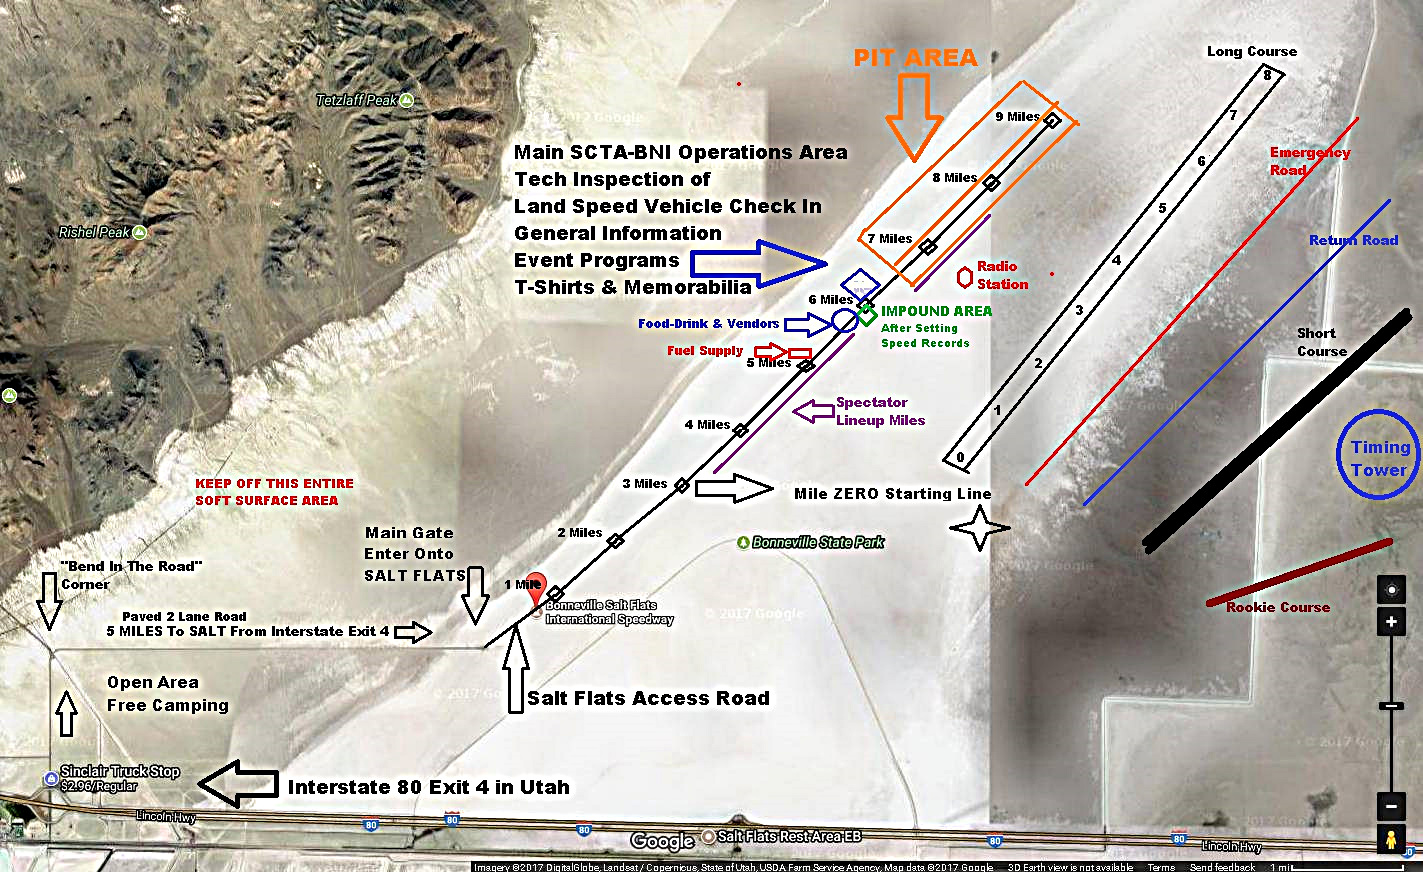 Layout Map of Bonneville Salt Flats